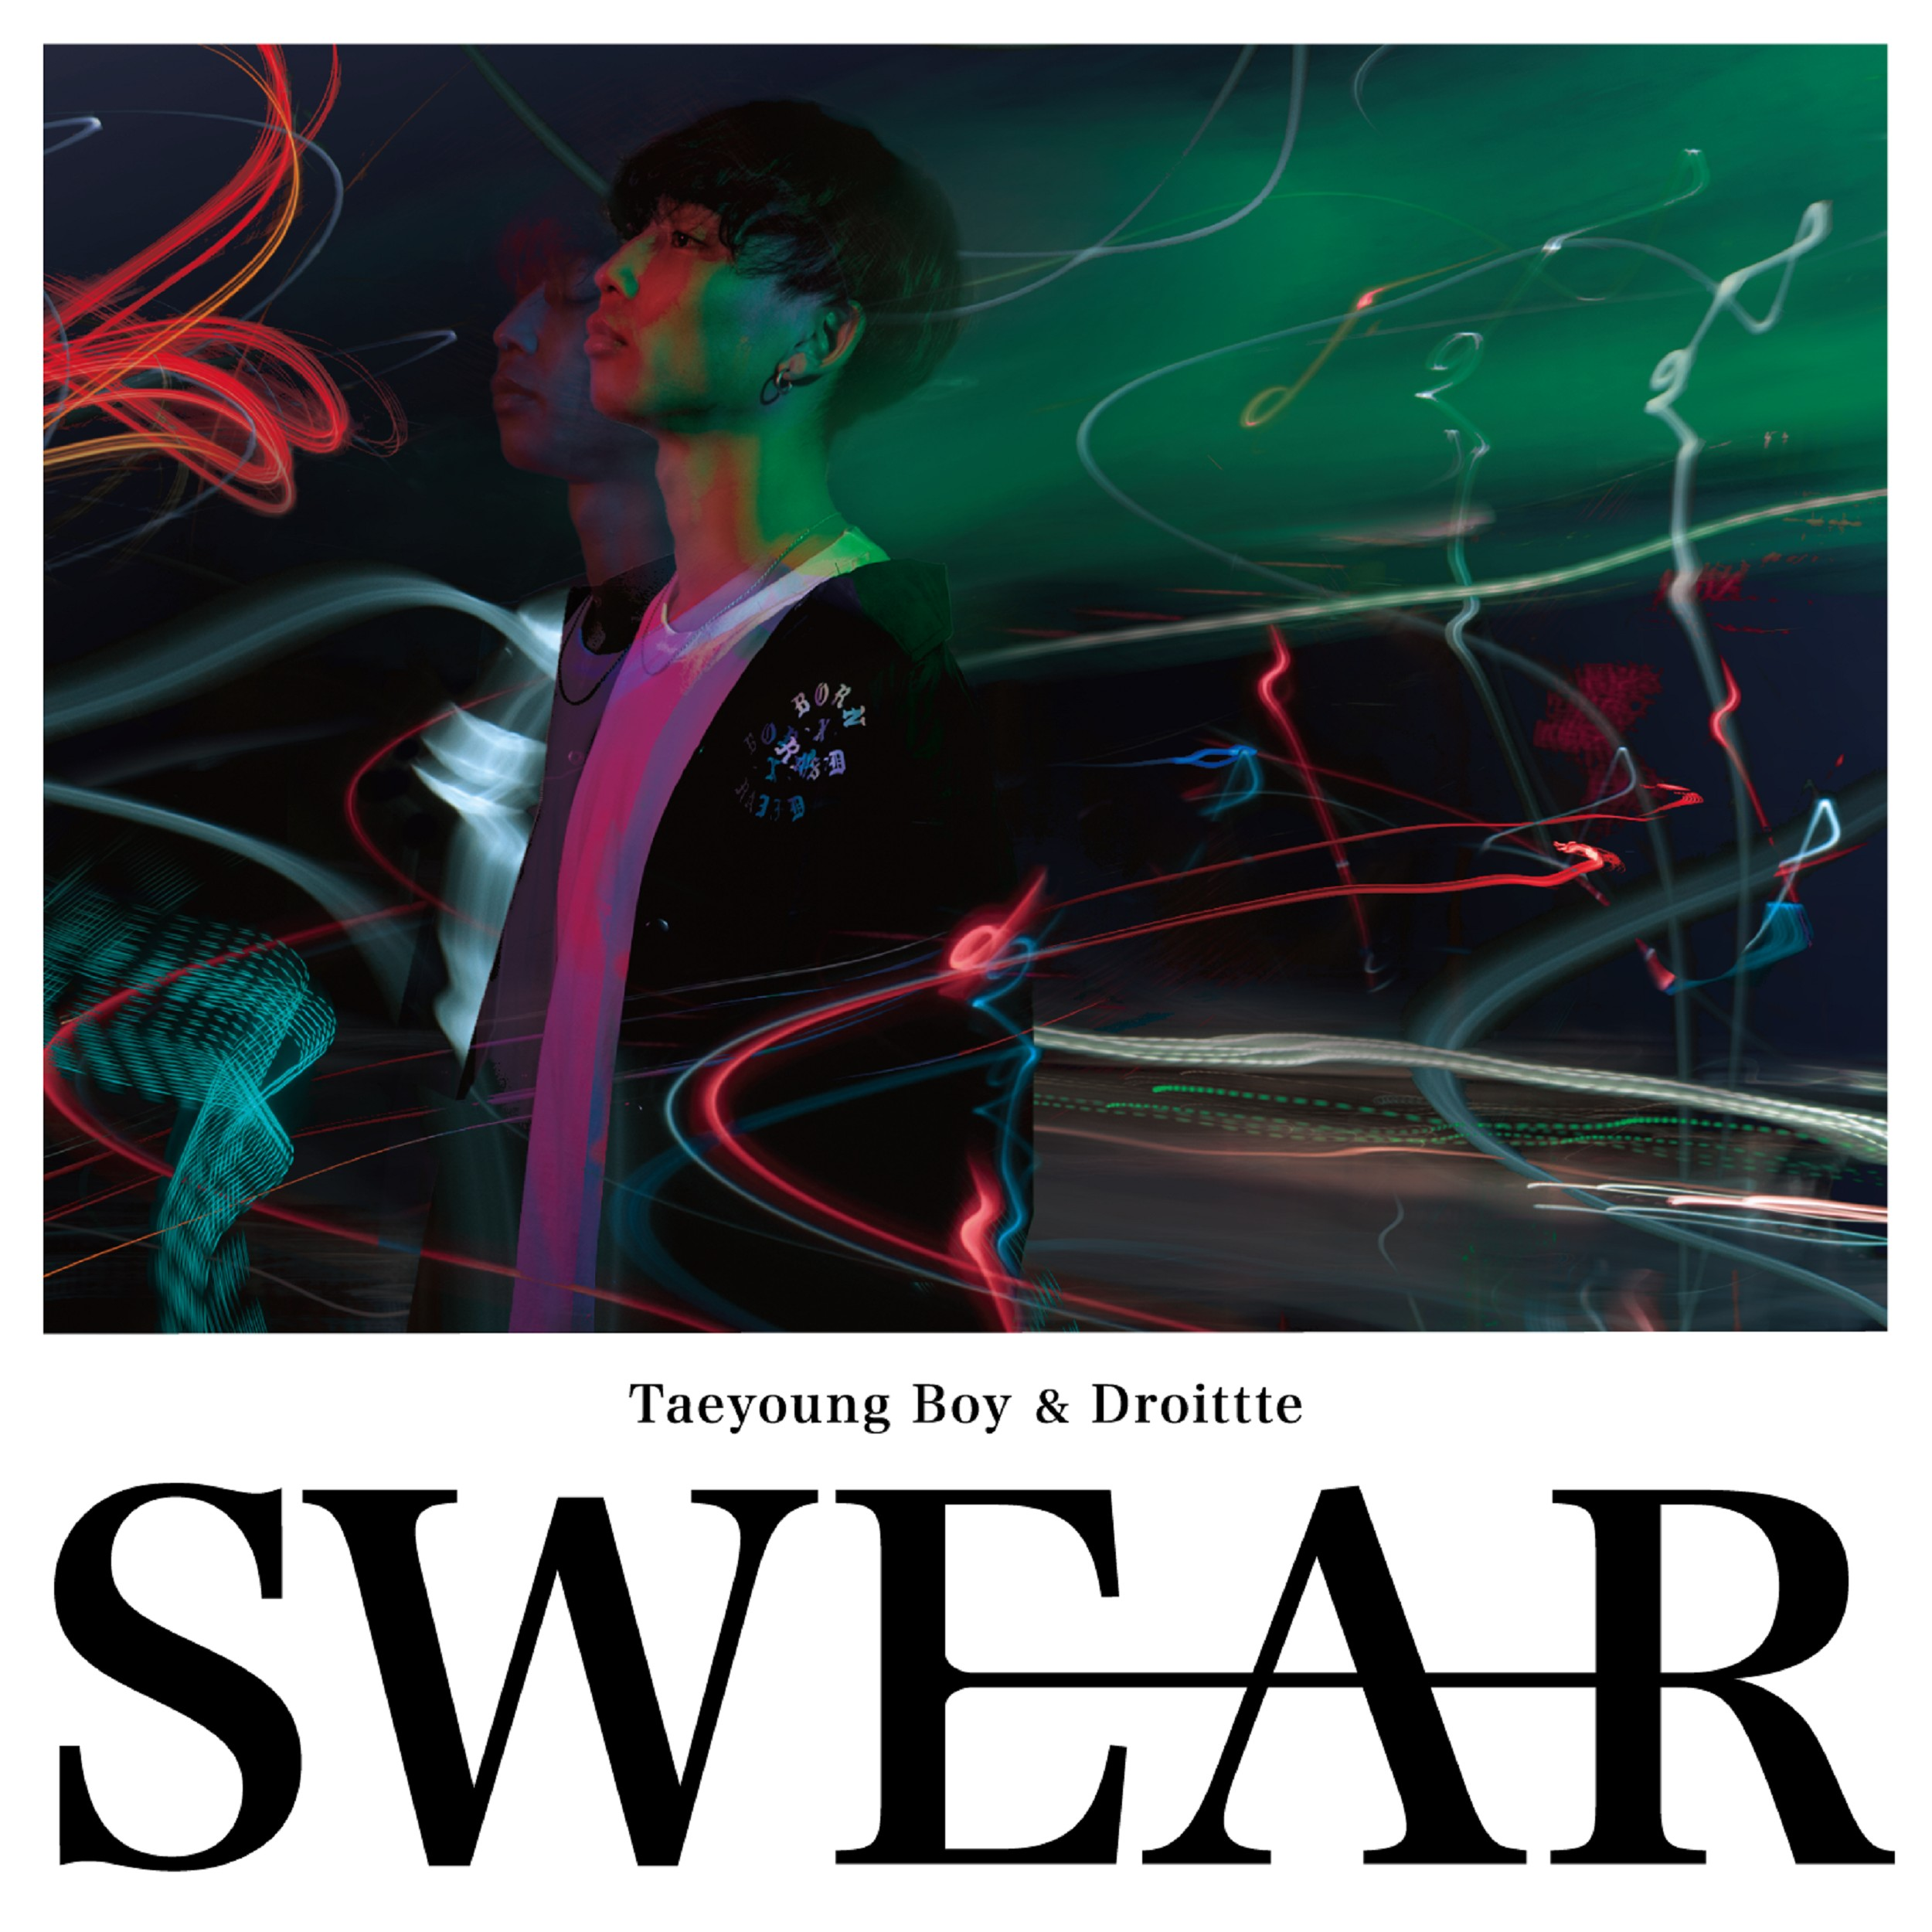 Image of SWEAR / Taeyoung Boy × Droittte